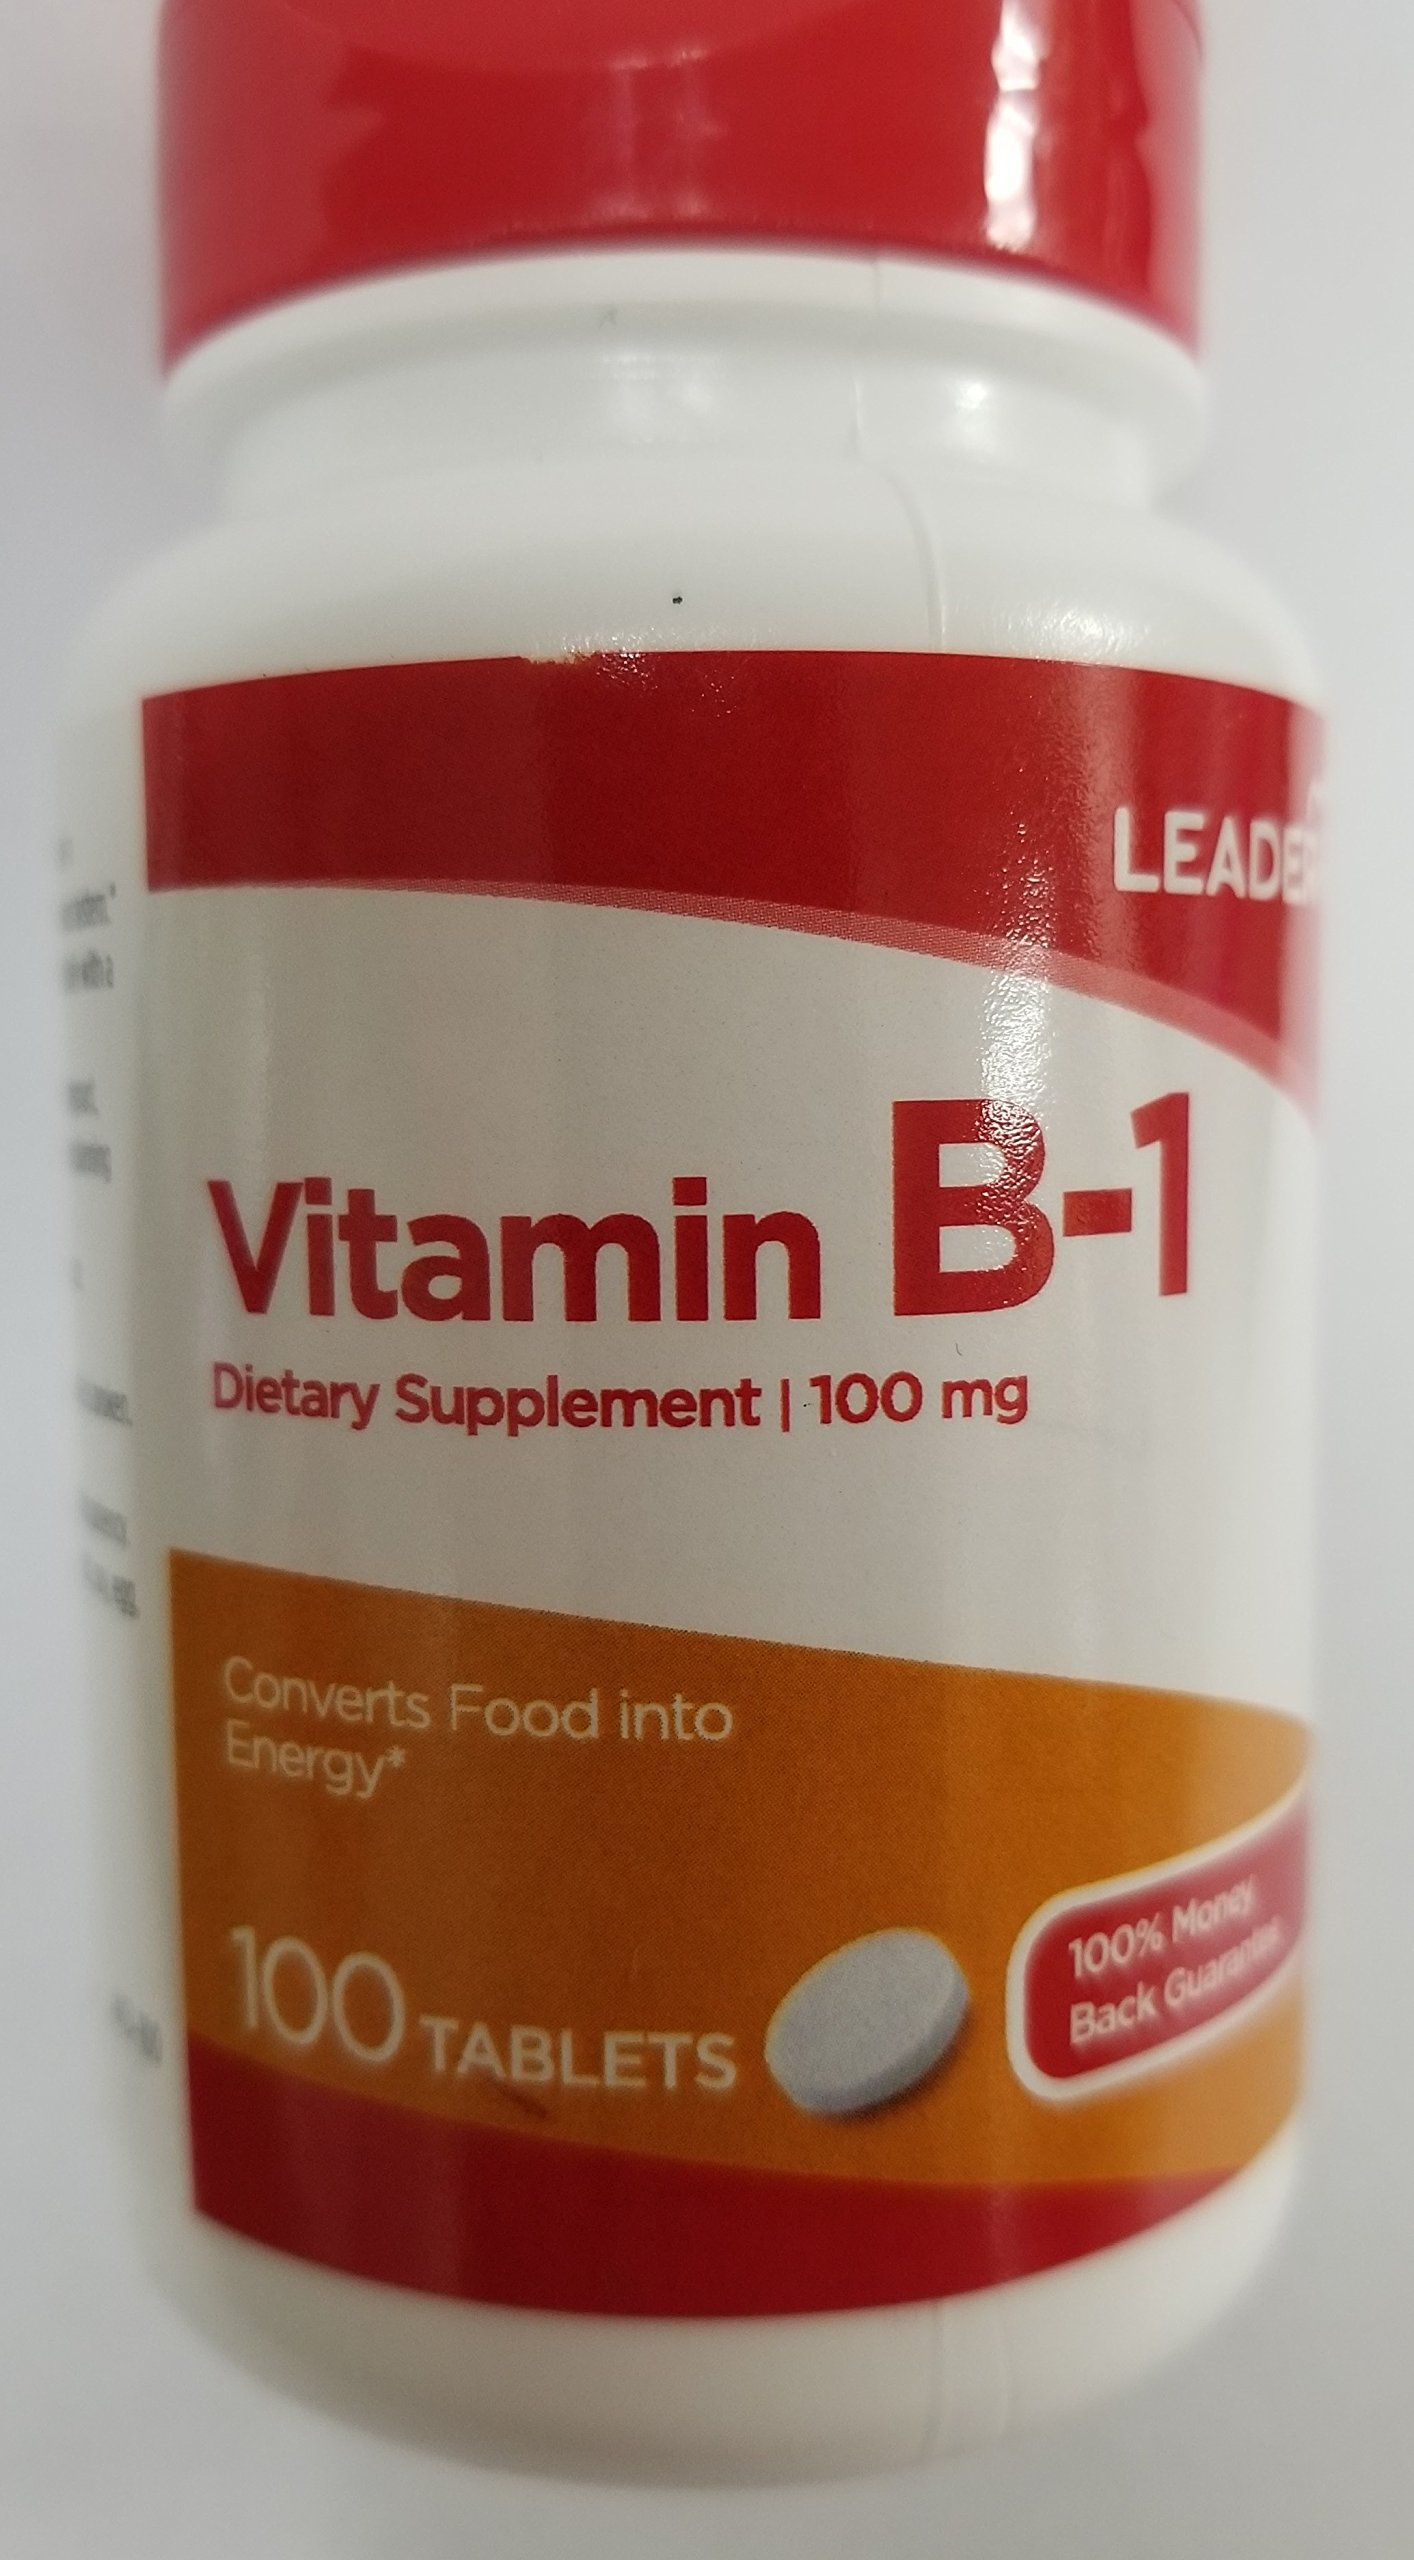 Leader Vitamin B-1 100mg, 100 Tablets Each (Pack of 10)